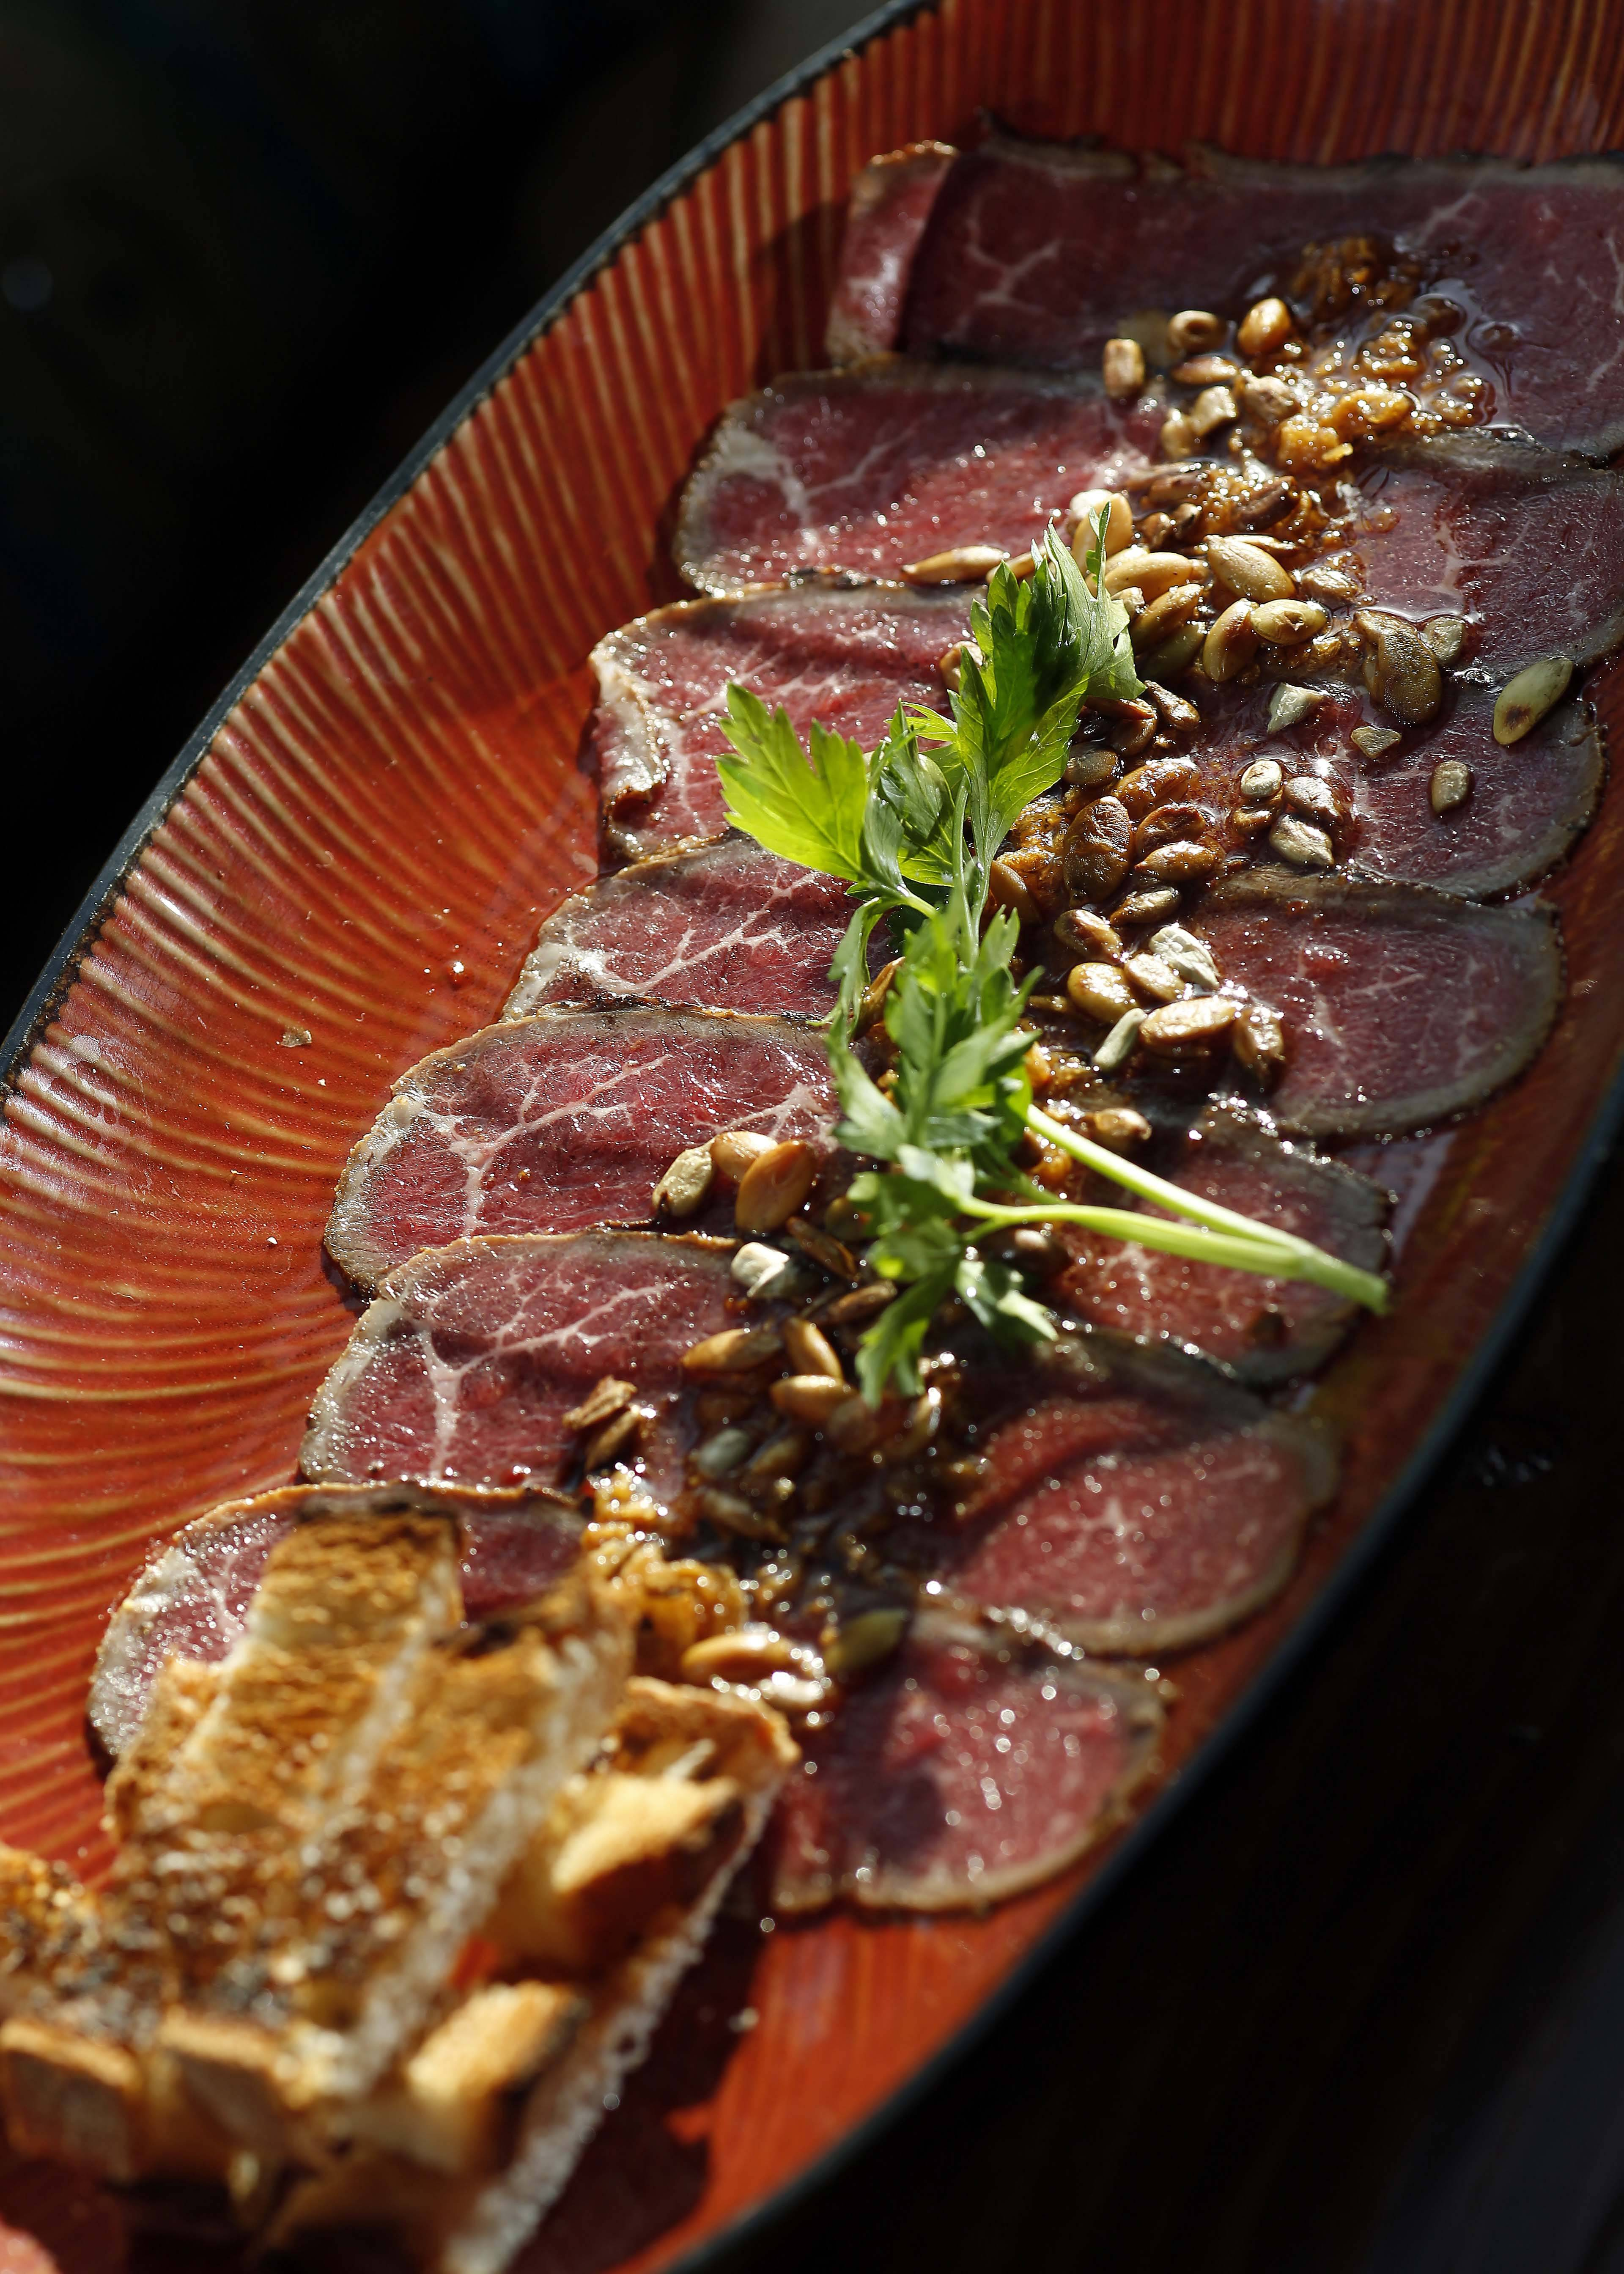 Carpaccio Piccante, seared Kobe beef with pumpkin and sunflower seeds, is among the appetizers available at Gaetano's in Batavia.